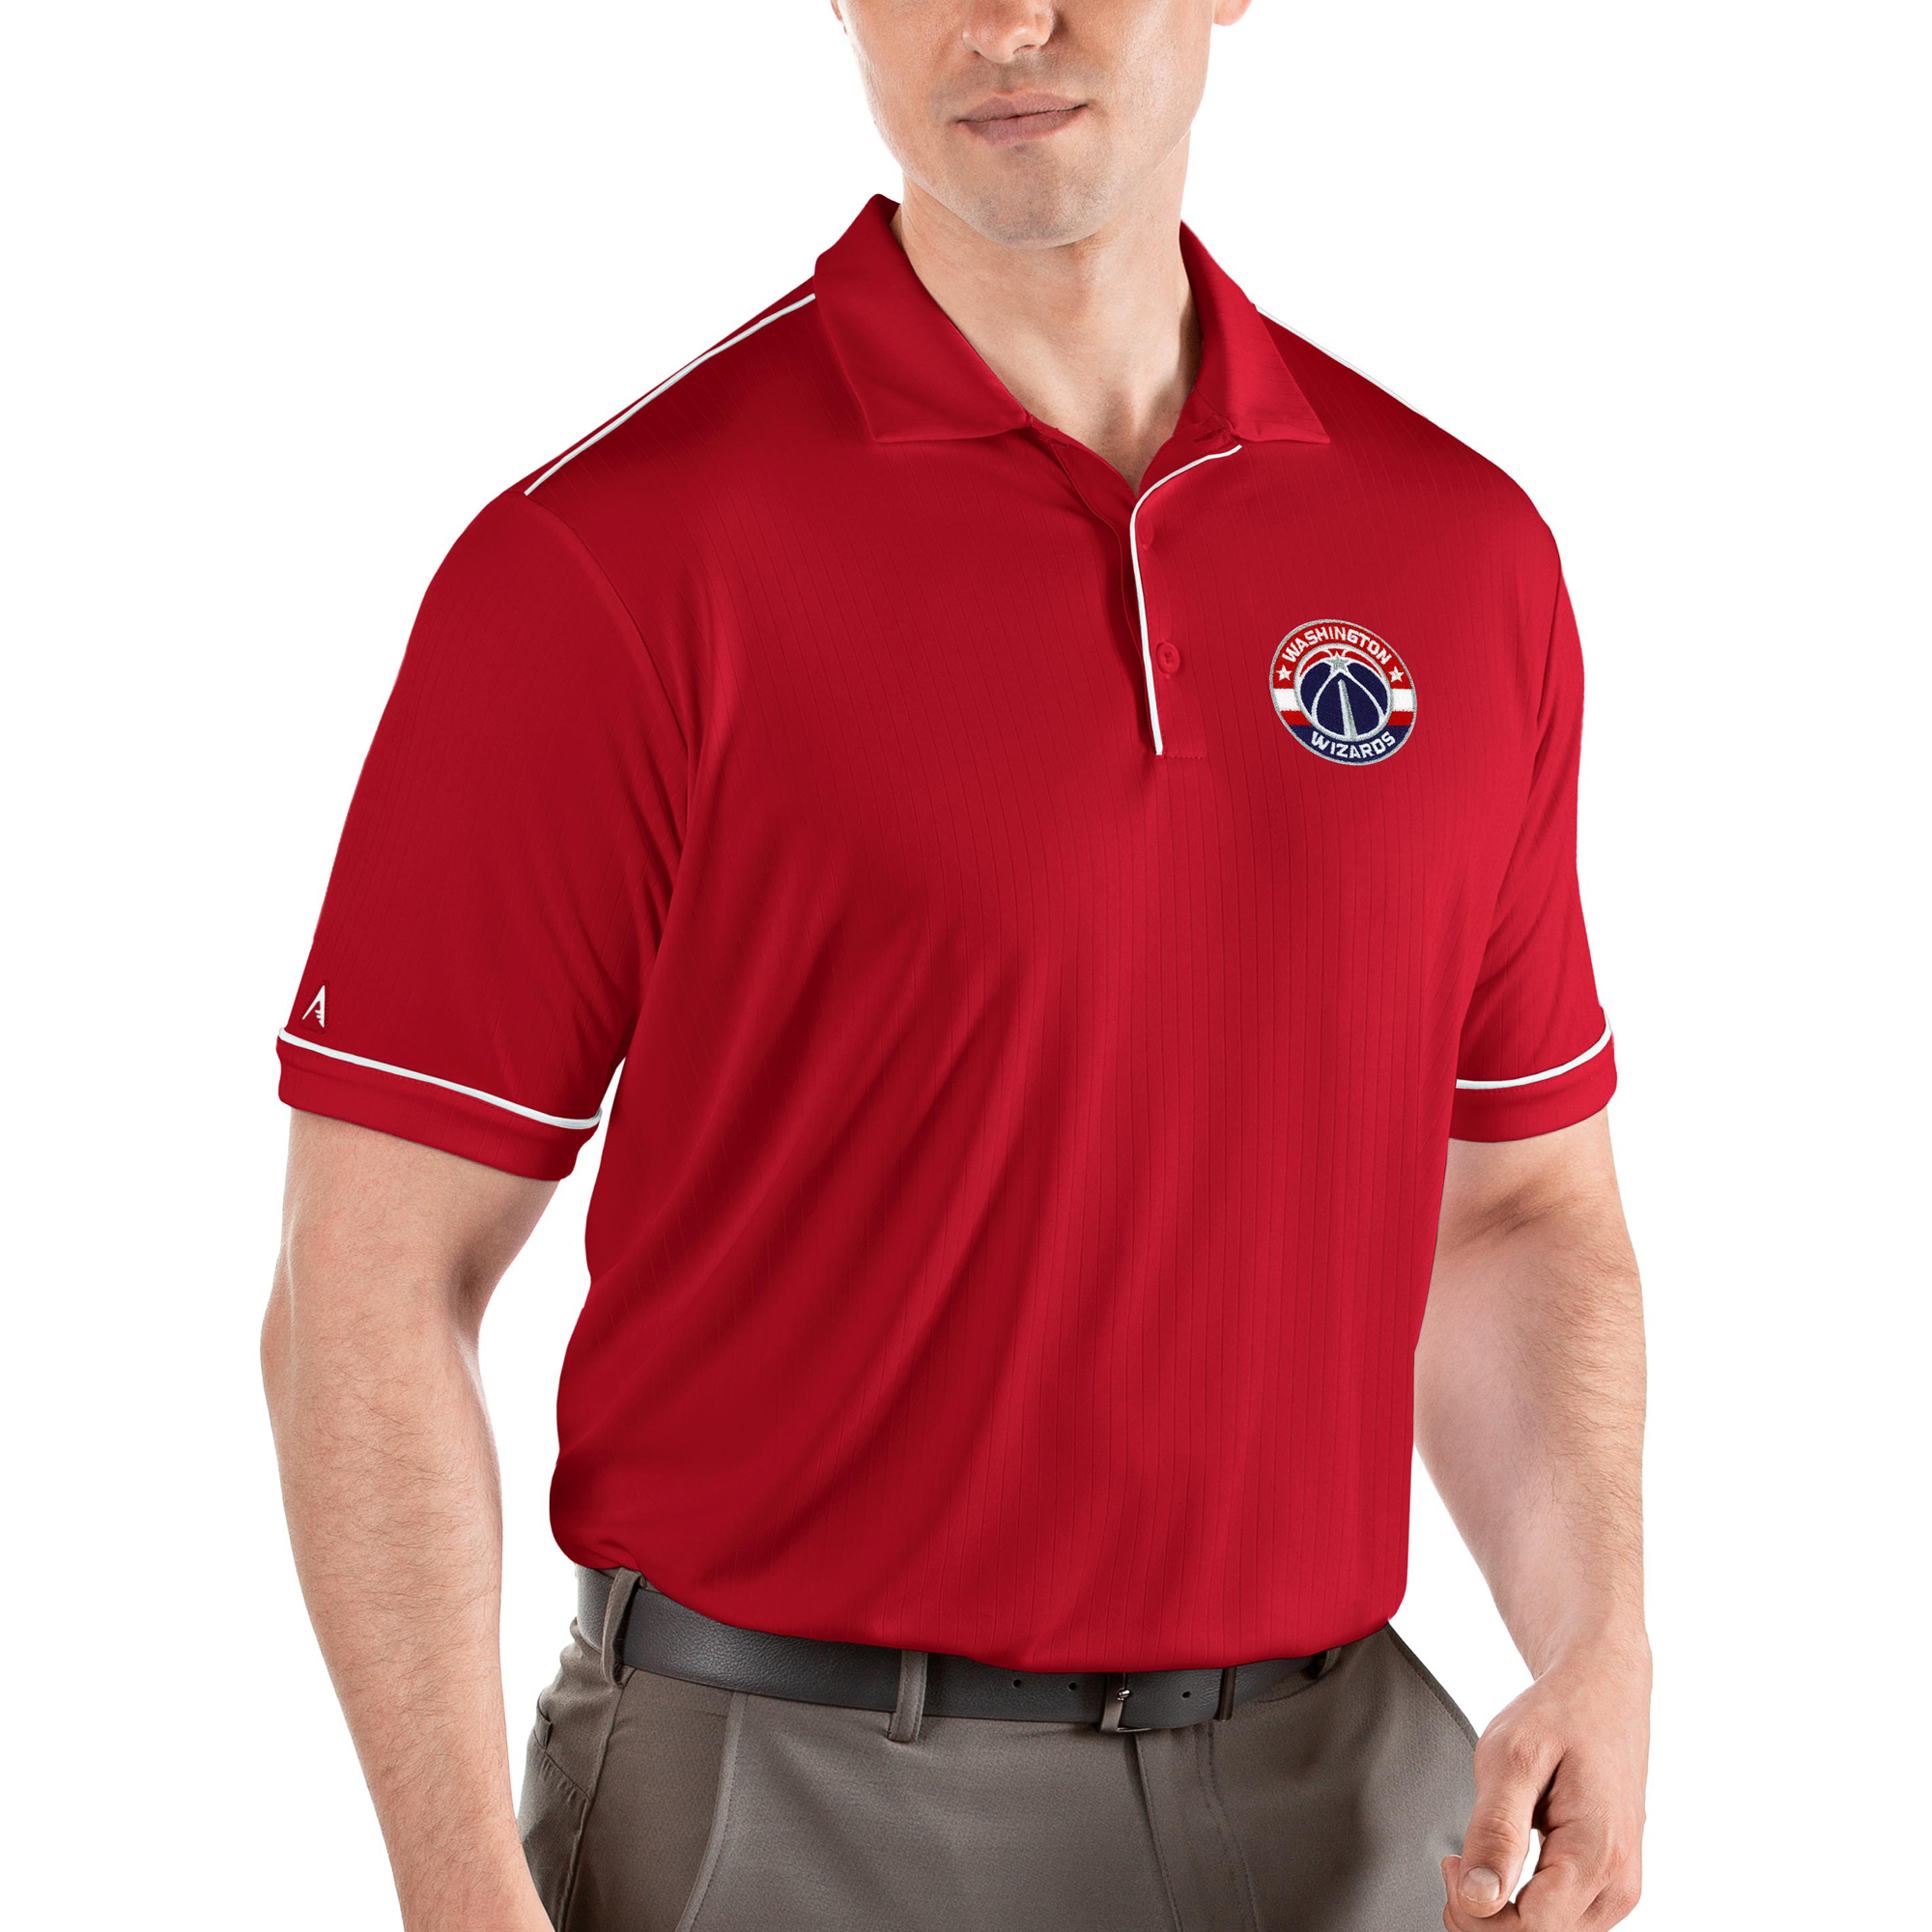 Washington Wizards Antigua Salute Polo - Red/White